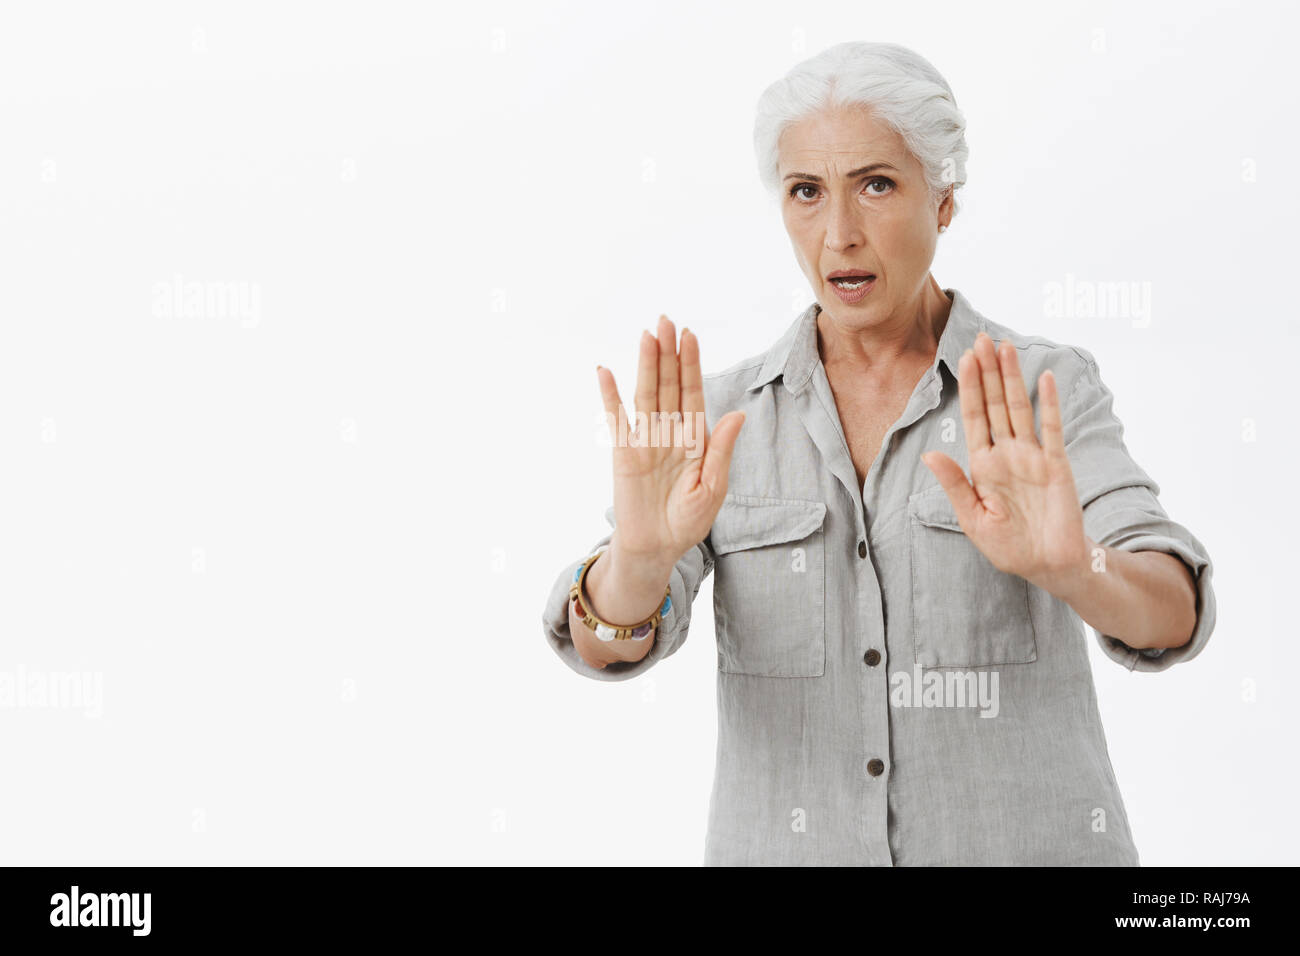 Serious-looking intense and wise elderly mother warn son to calm down raising palms, trying carefully talk to reduce pressure, asking relax and not worry, rejecting something or showing stop gesture - Stock Image